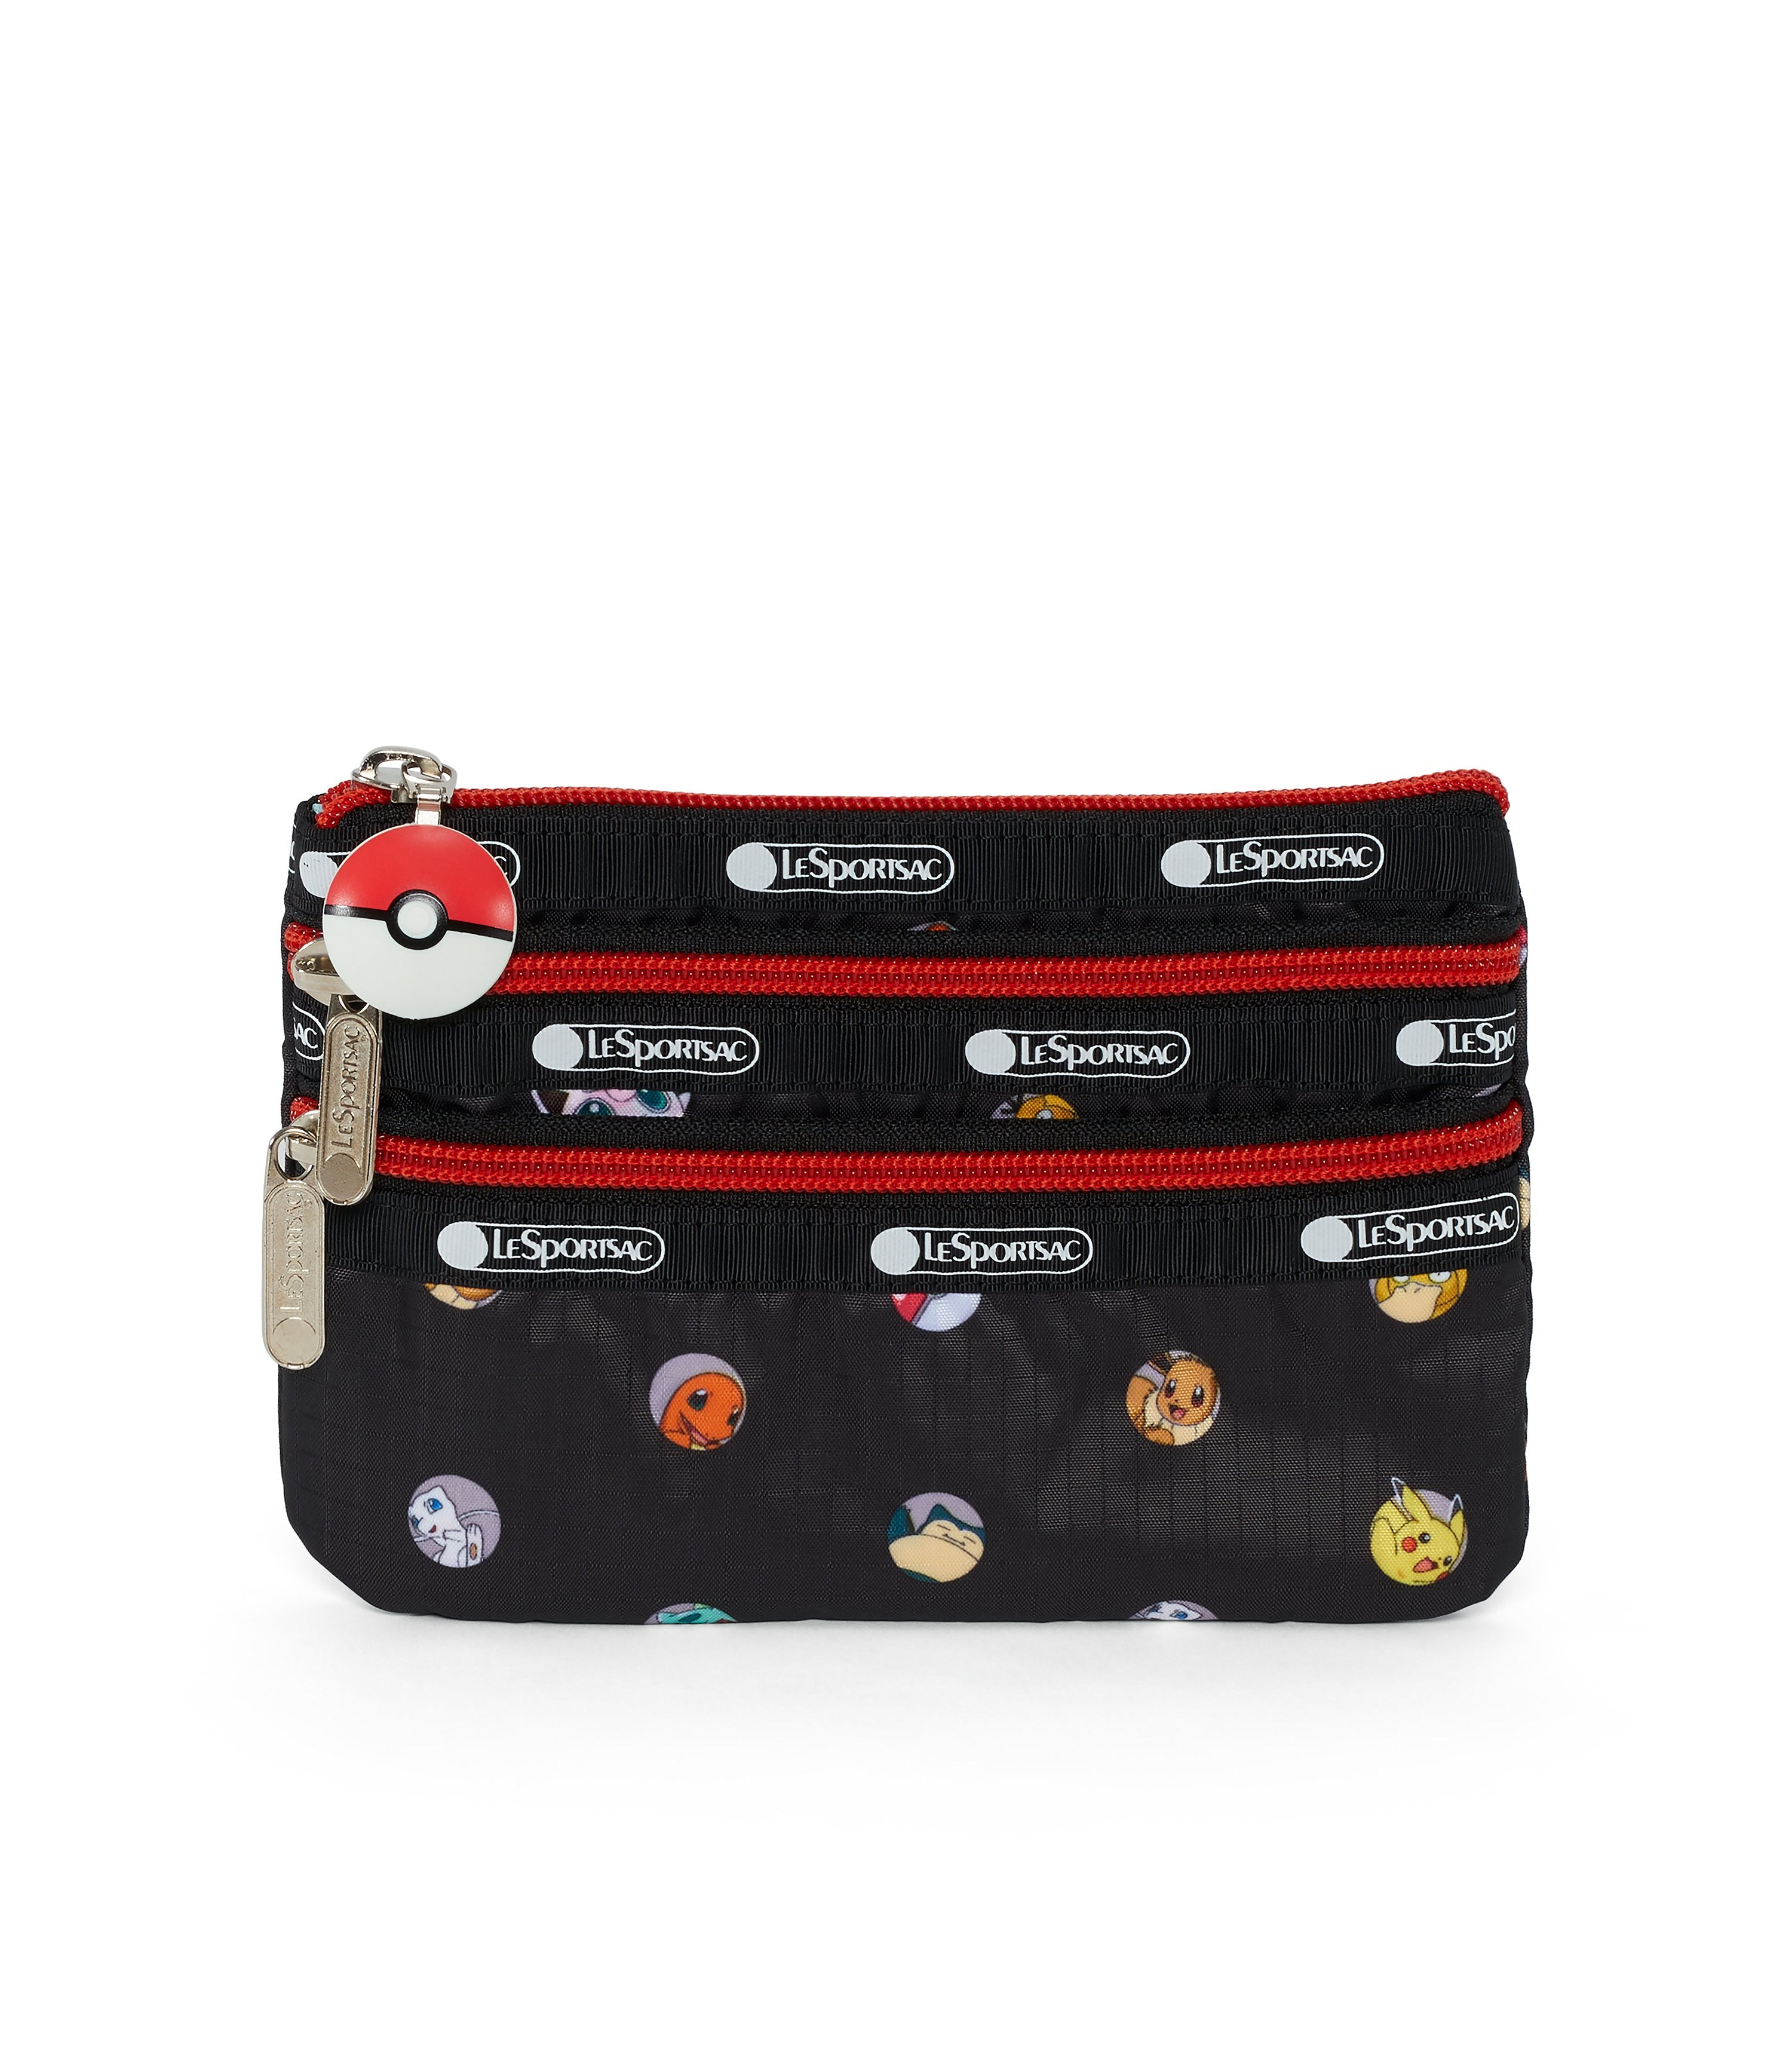 Pokémon Special 3-Zip Cosmetic-LeSportsac-small-PokéBall-Pouch-front